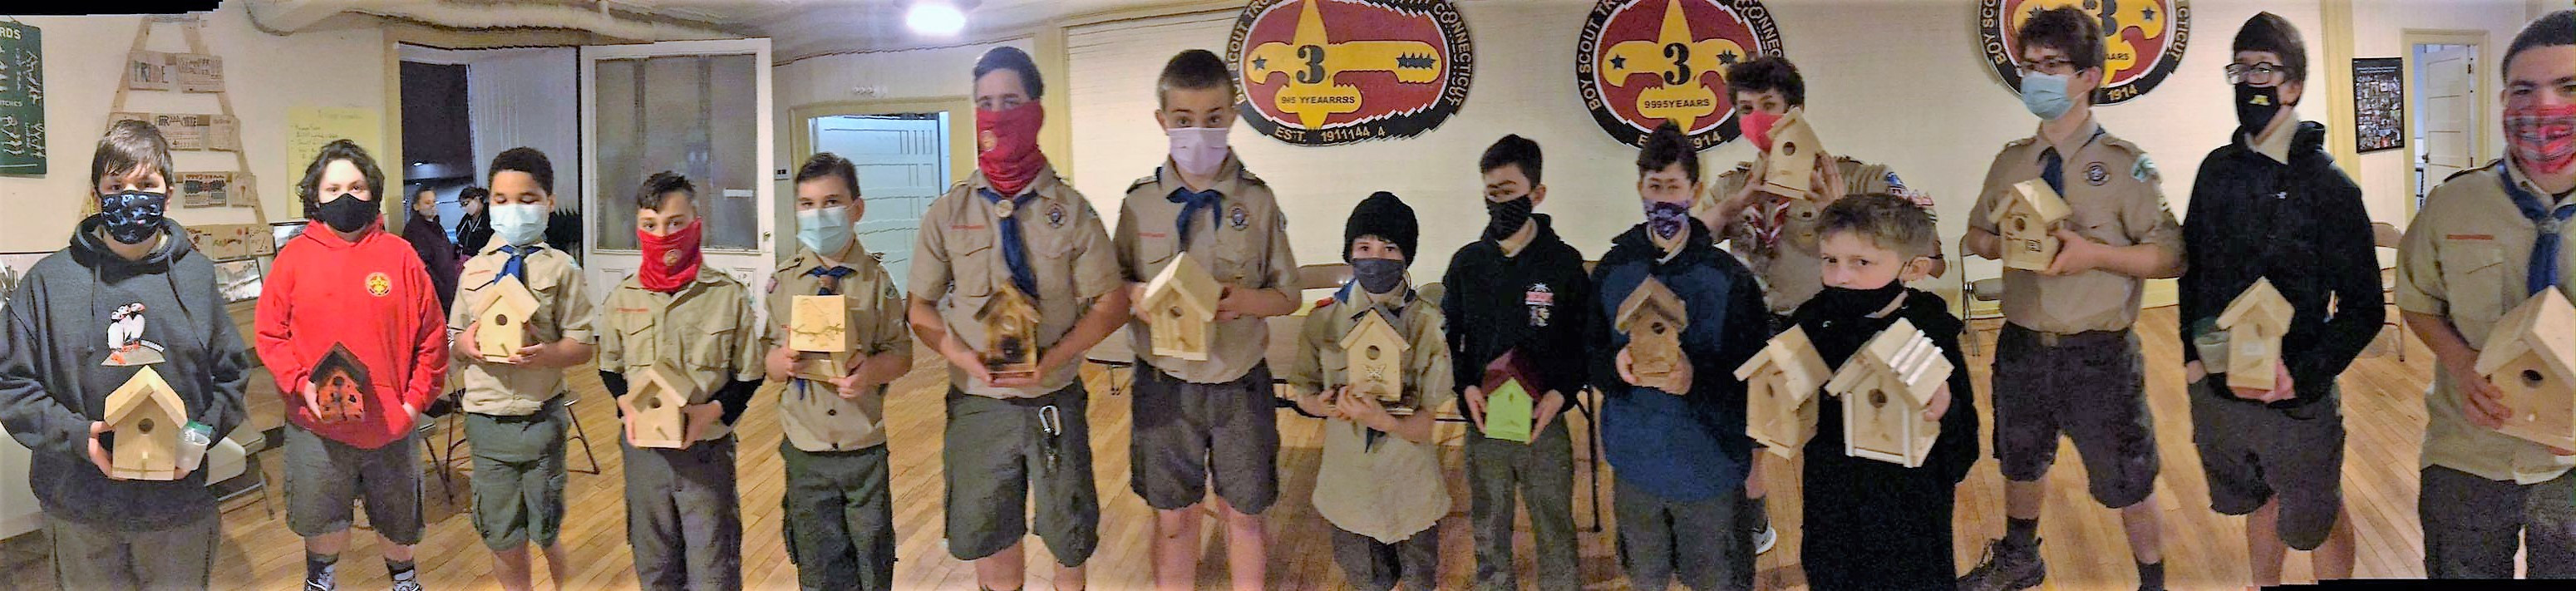 birdhouses troop 3.jpg